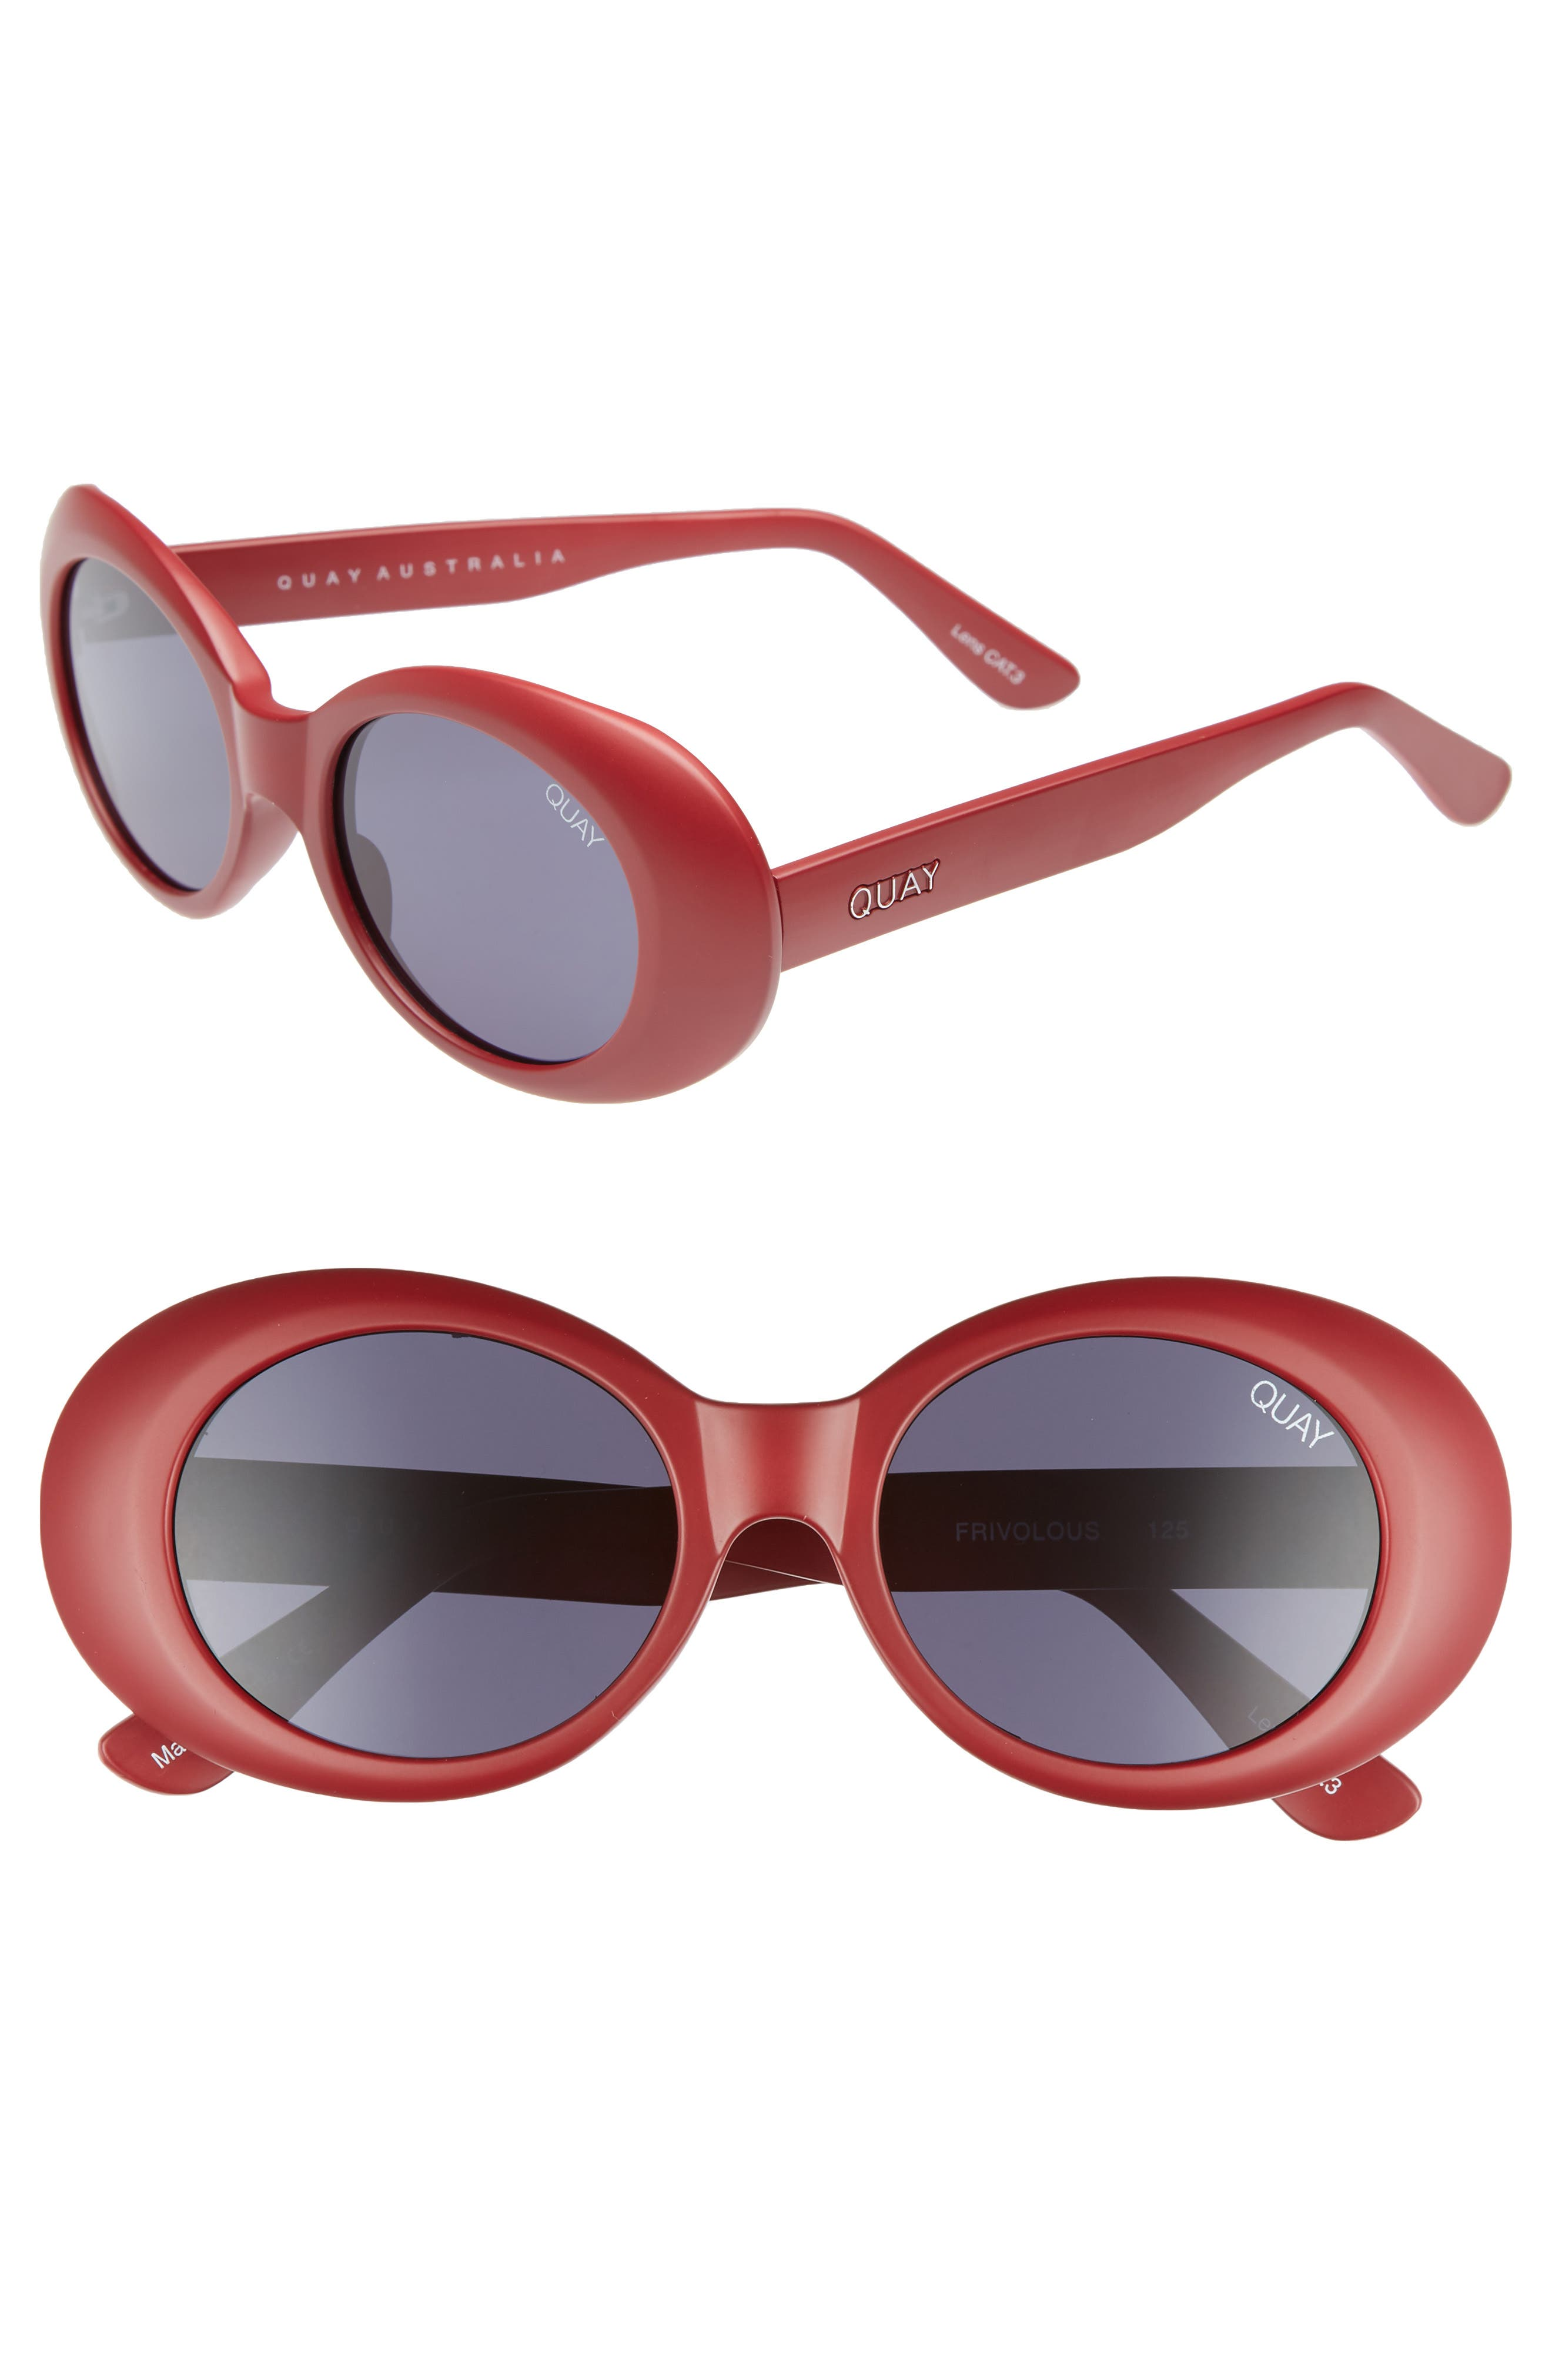 Quay Australia Frivolous 50mm Oval Sunglasses